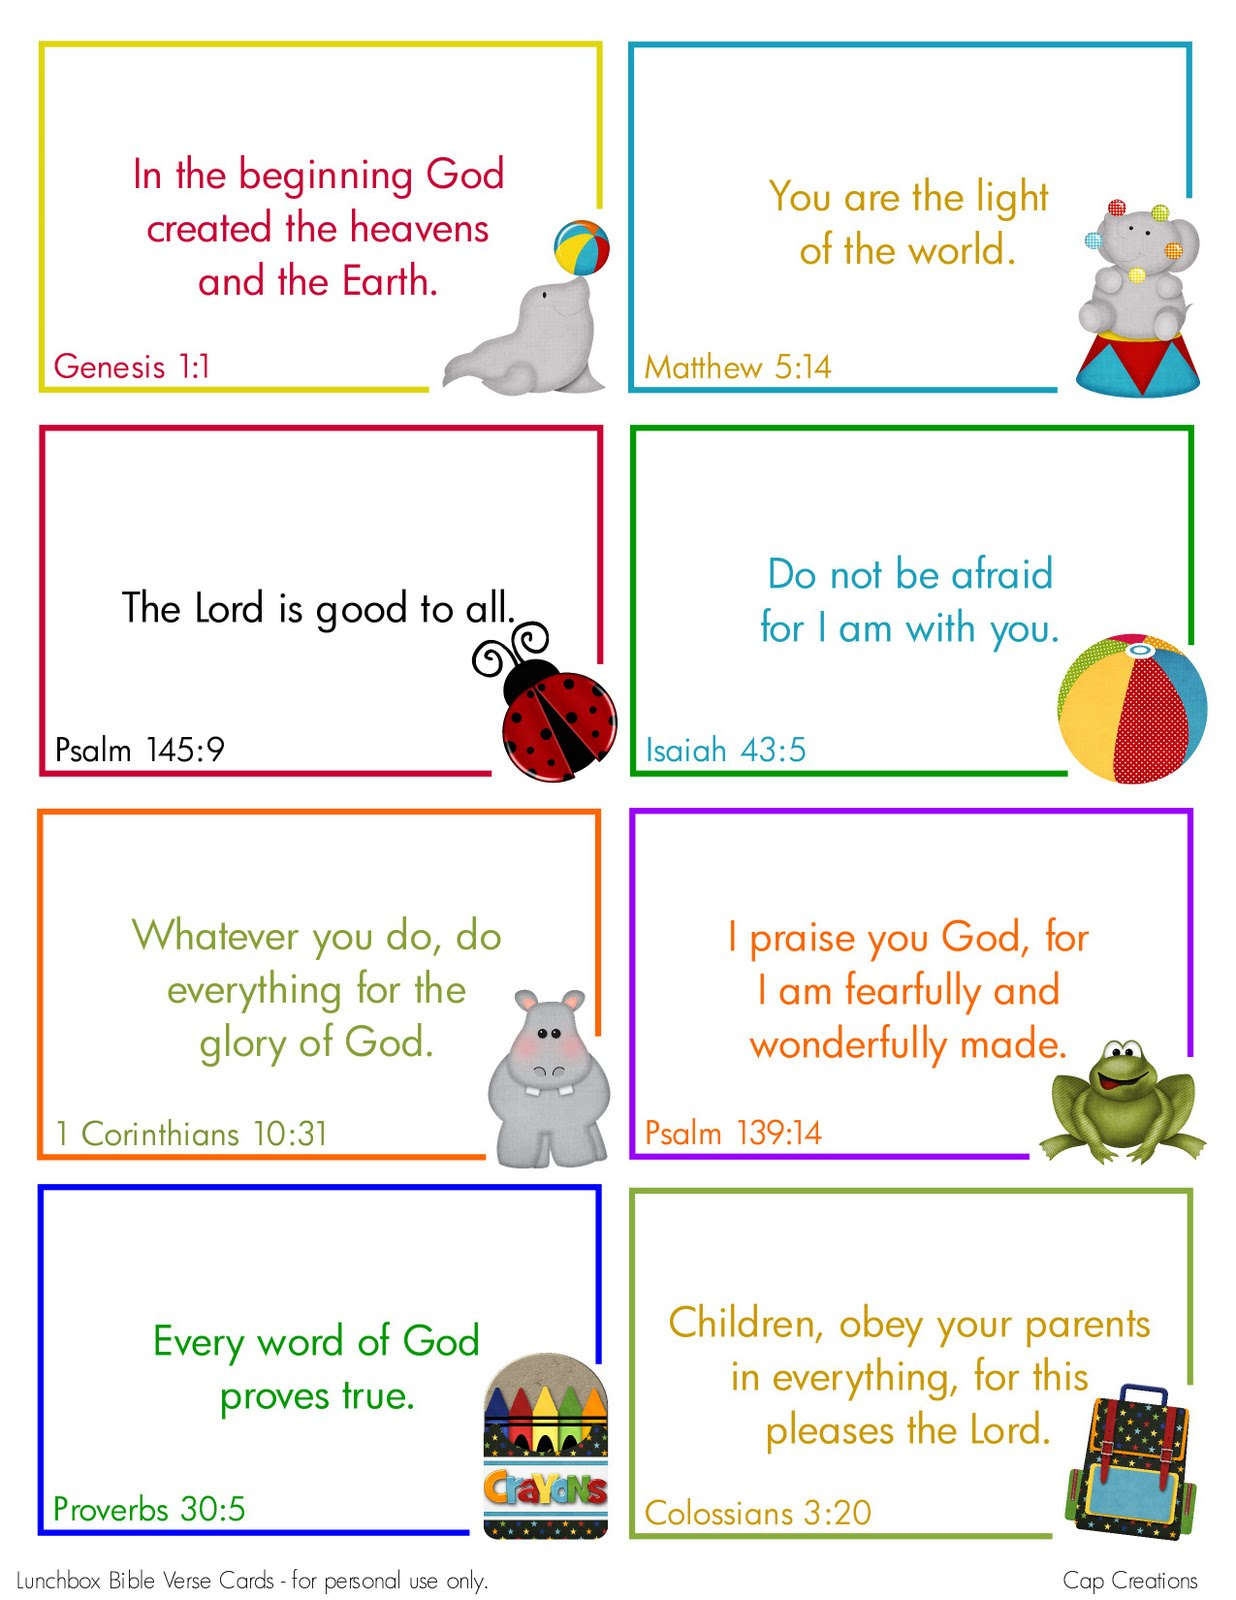 picture about Bible Verse Cards Printable titled Cap Creations: No cost Printable Lunchbox Bible Verse Playing cards